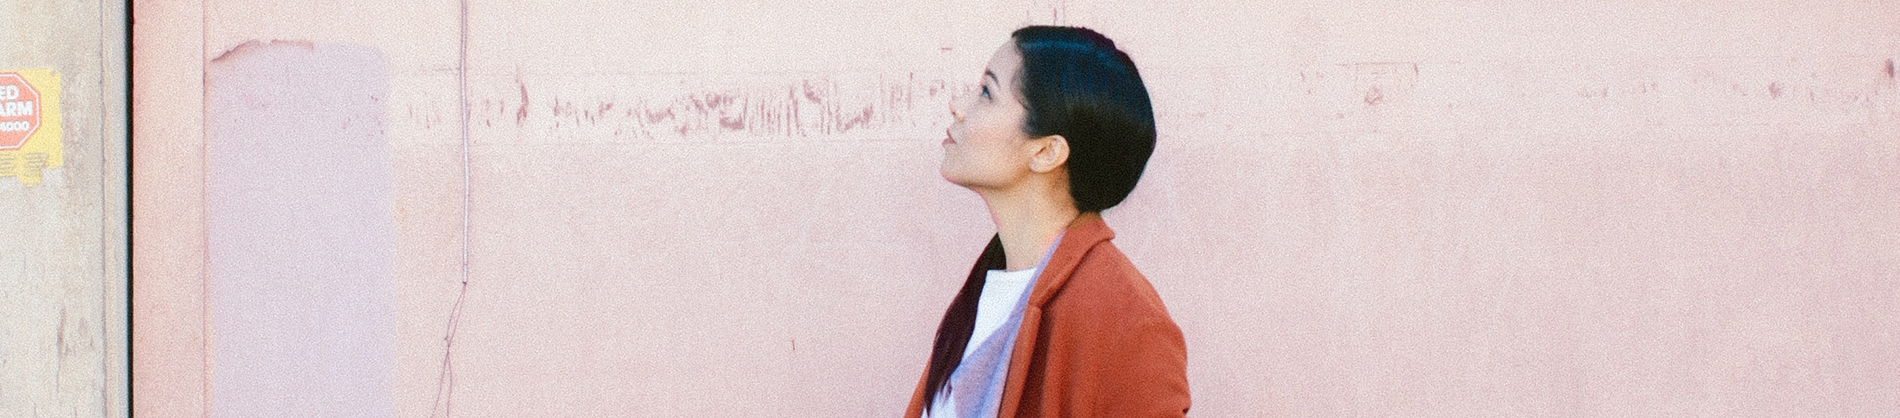 A women stood against a pink wall looking up to the sky